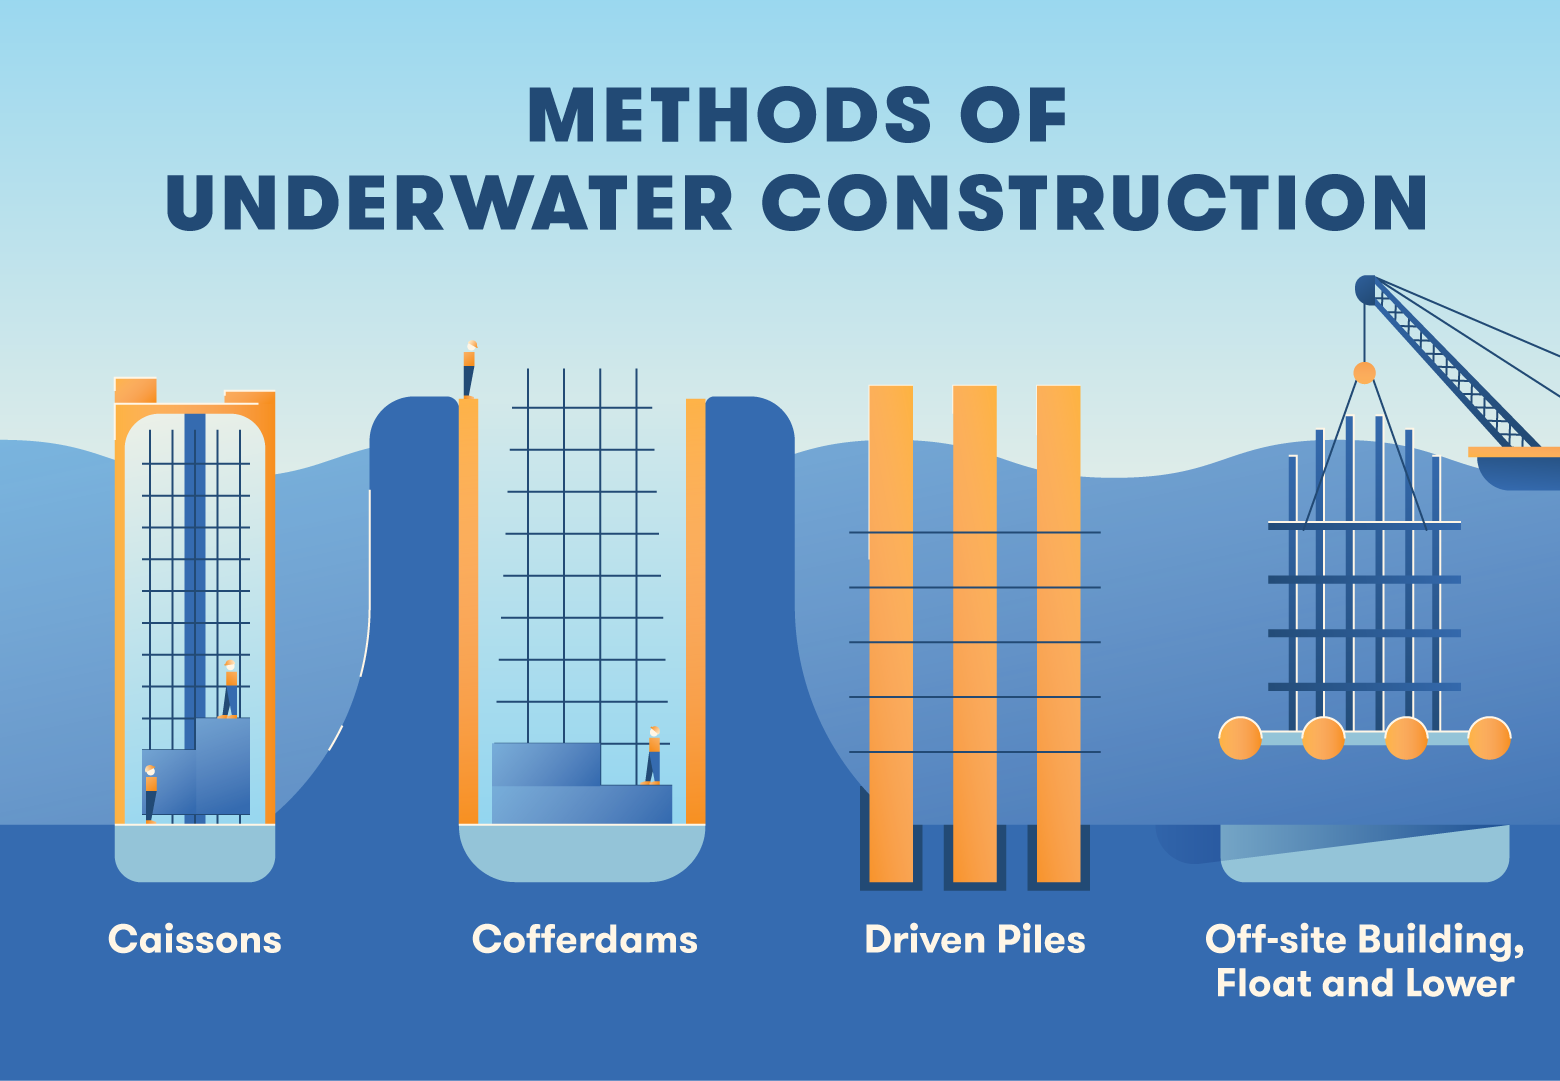 The four most common methods of underwater construction use caissons, cofferdams, driven piles, and off-site building techniques.